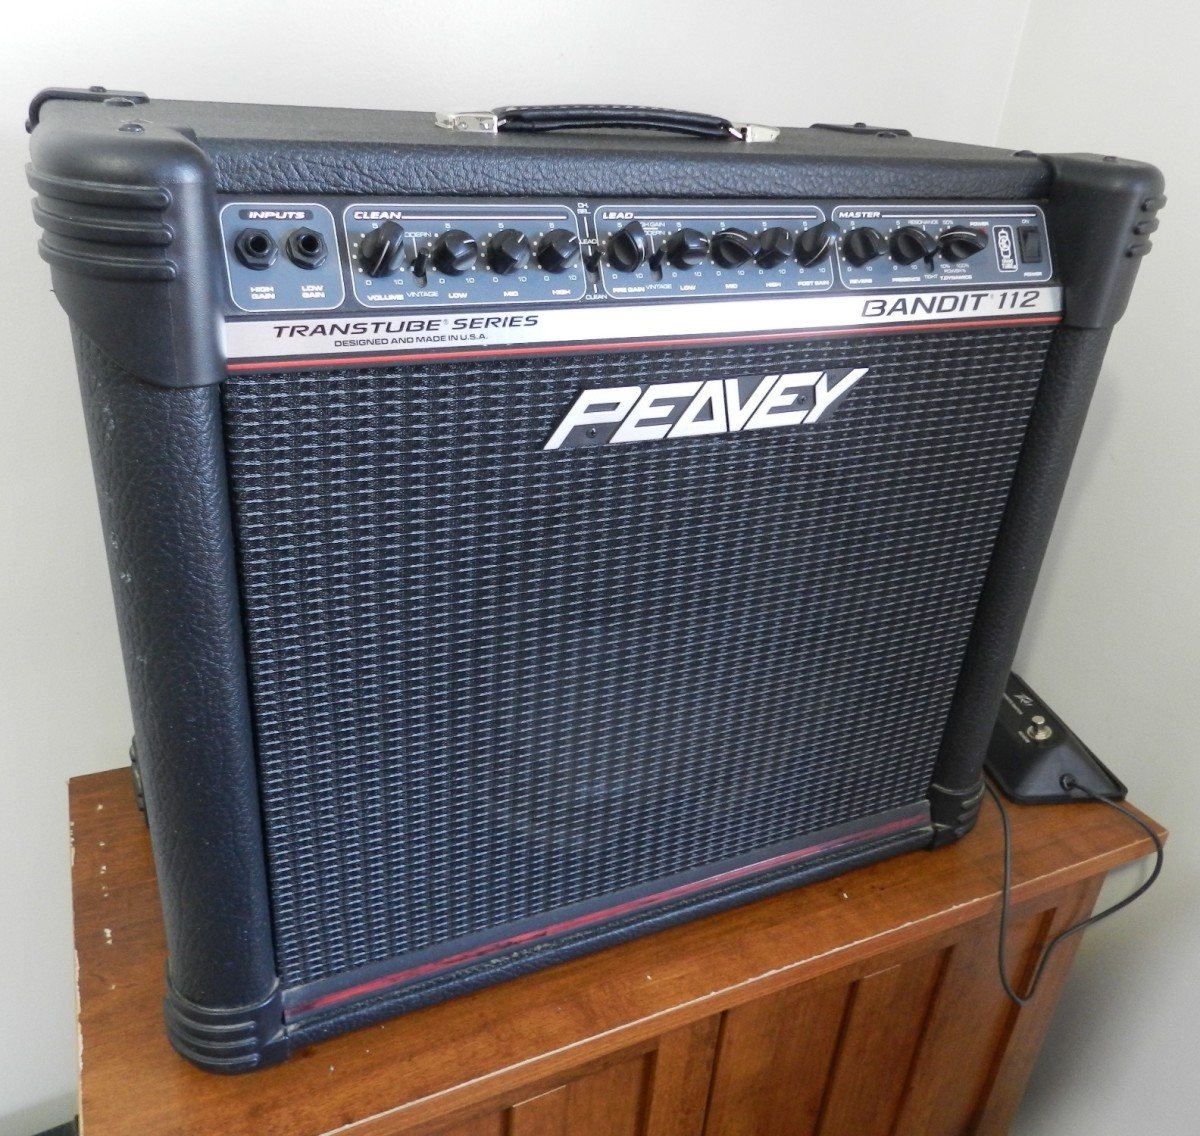 My Peavey Bandit is still going strong after almost 15 years.